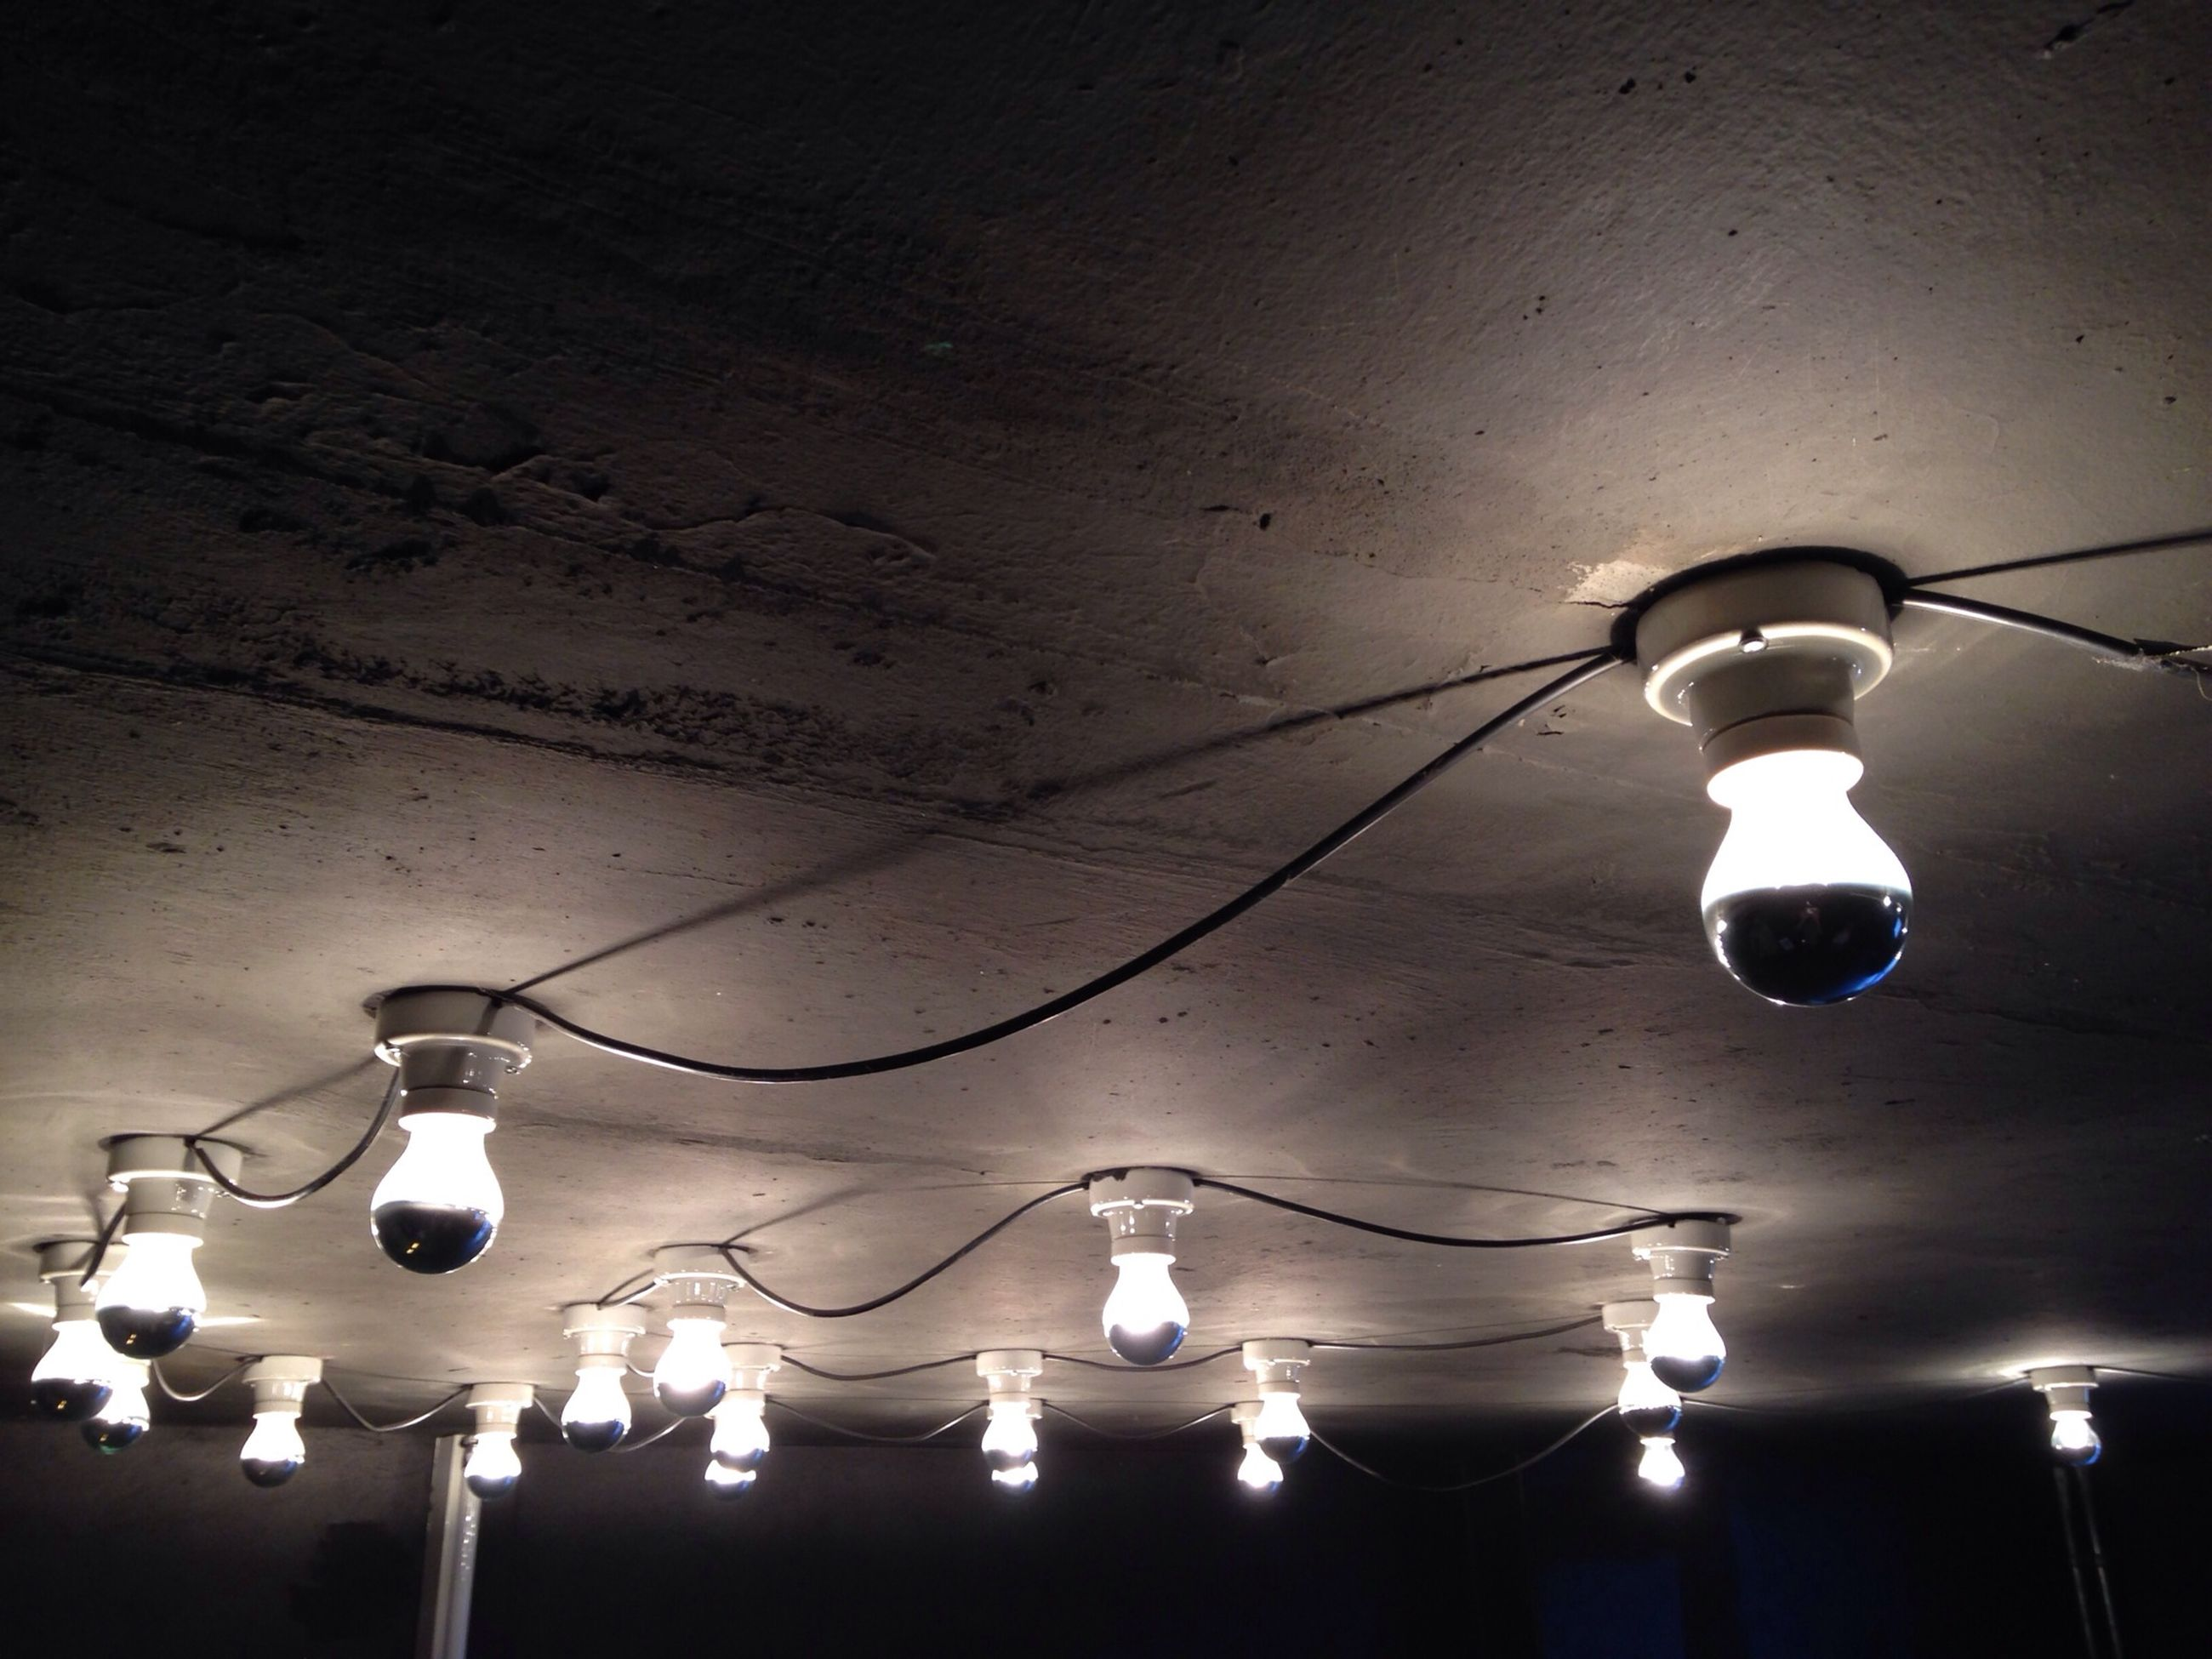 lighting equipment, illuminated, low angle view, electricity, hanging, ceiling, electric light, indoors, electric lamp, light bulb, street light, decoration, lamp, chandelier, night, light - natural phenomenon, lantern, glowing, lit, no people